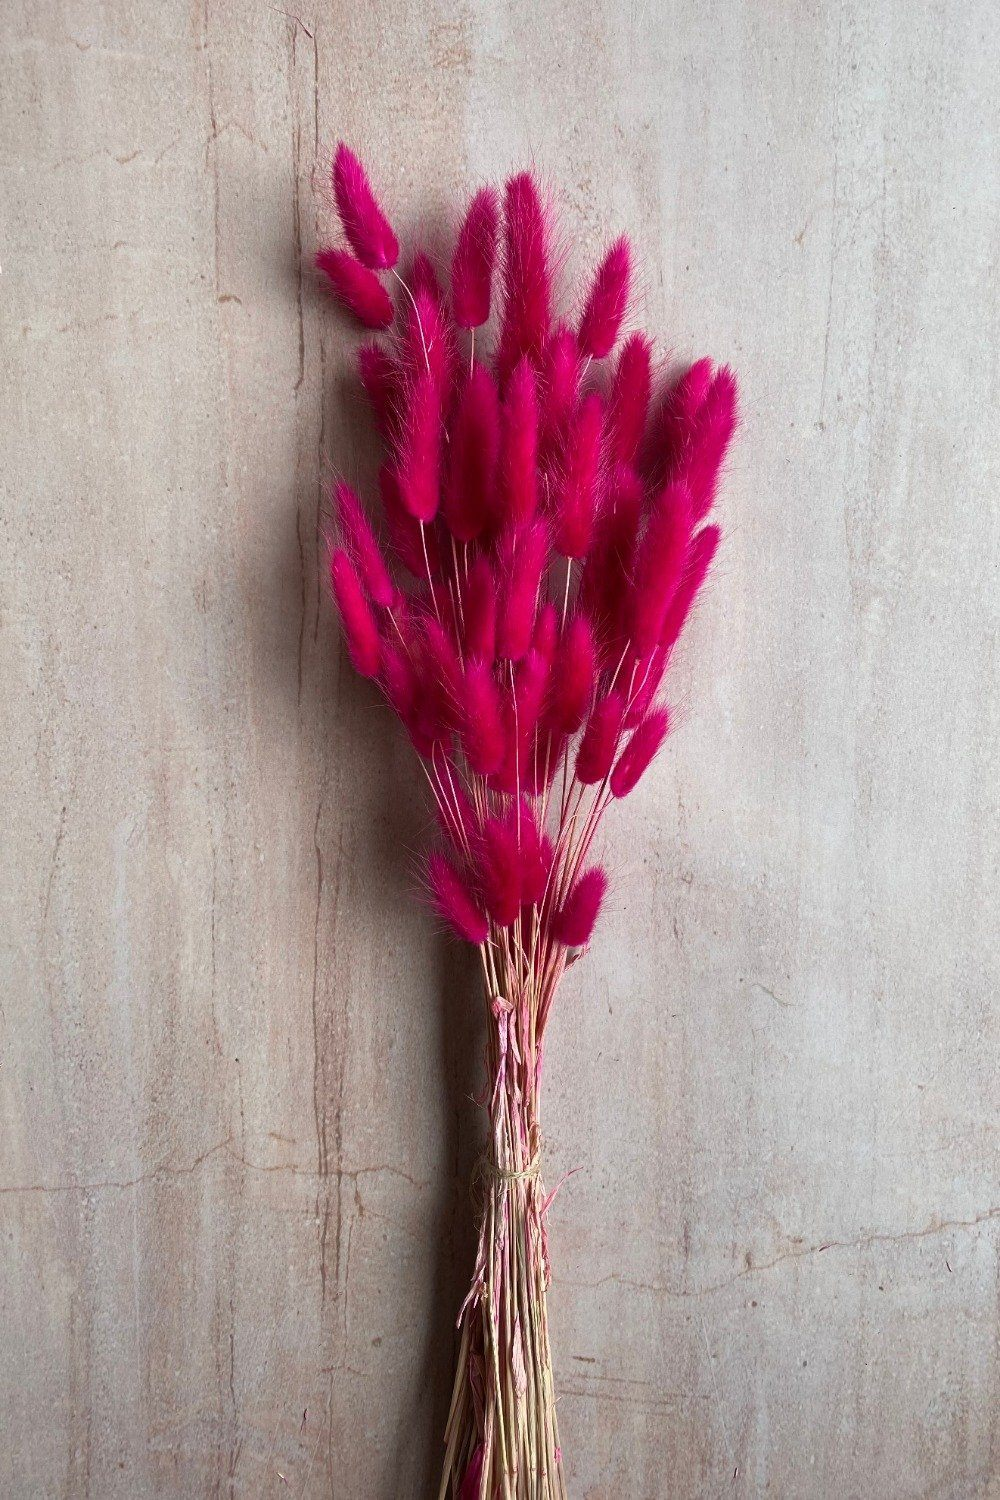 Dried Hot Pink Bunny Tails Bunch Dried Flowers Blume